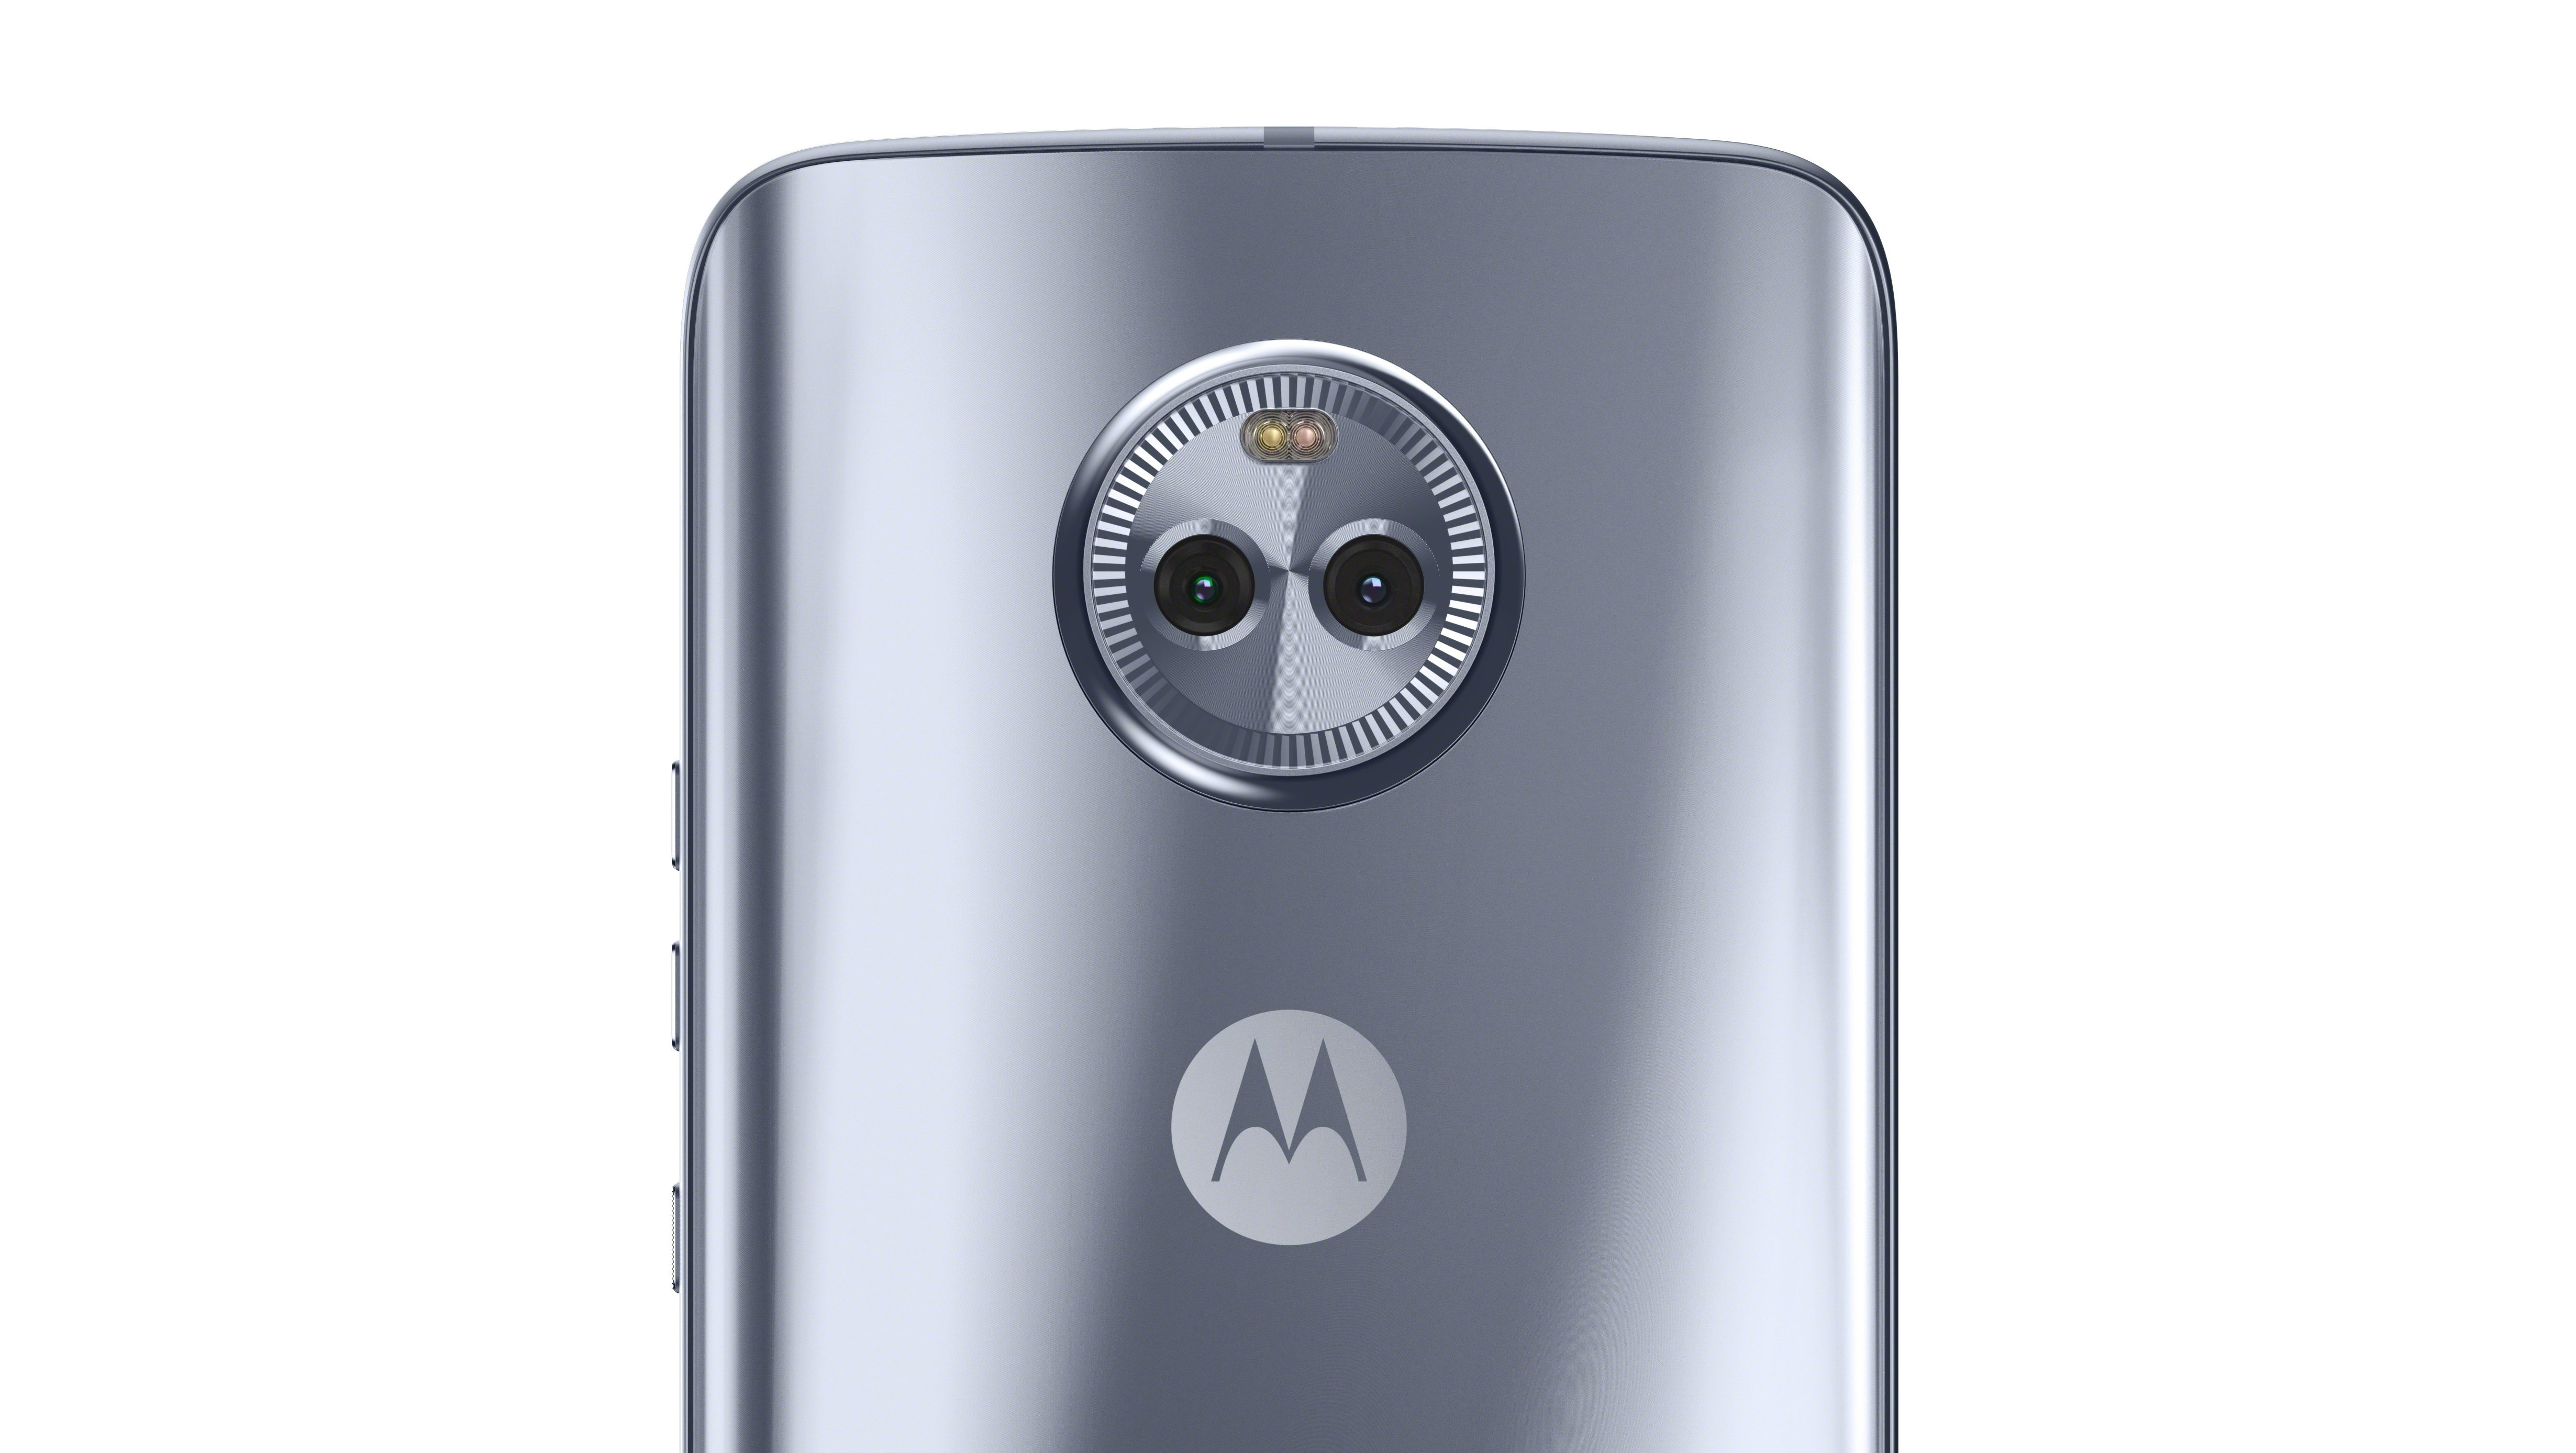 TWRP now available for Motorola Moto X4